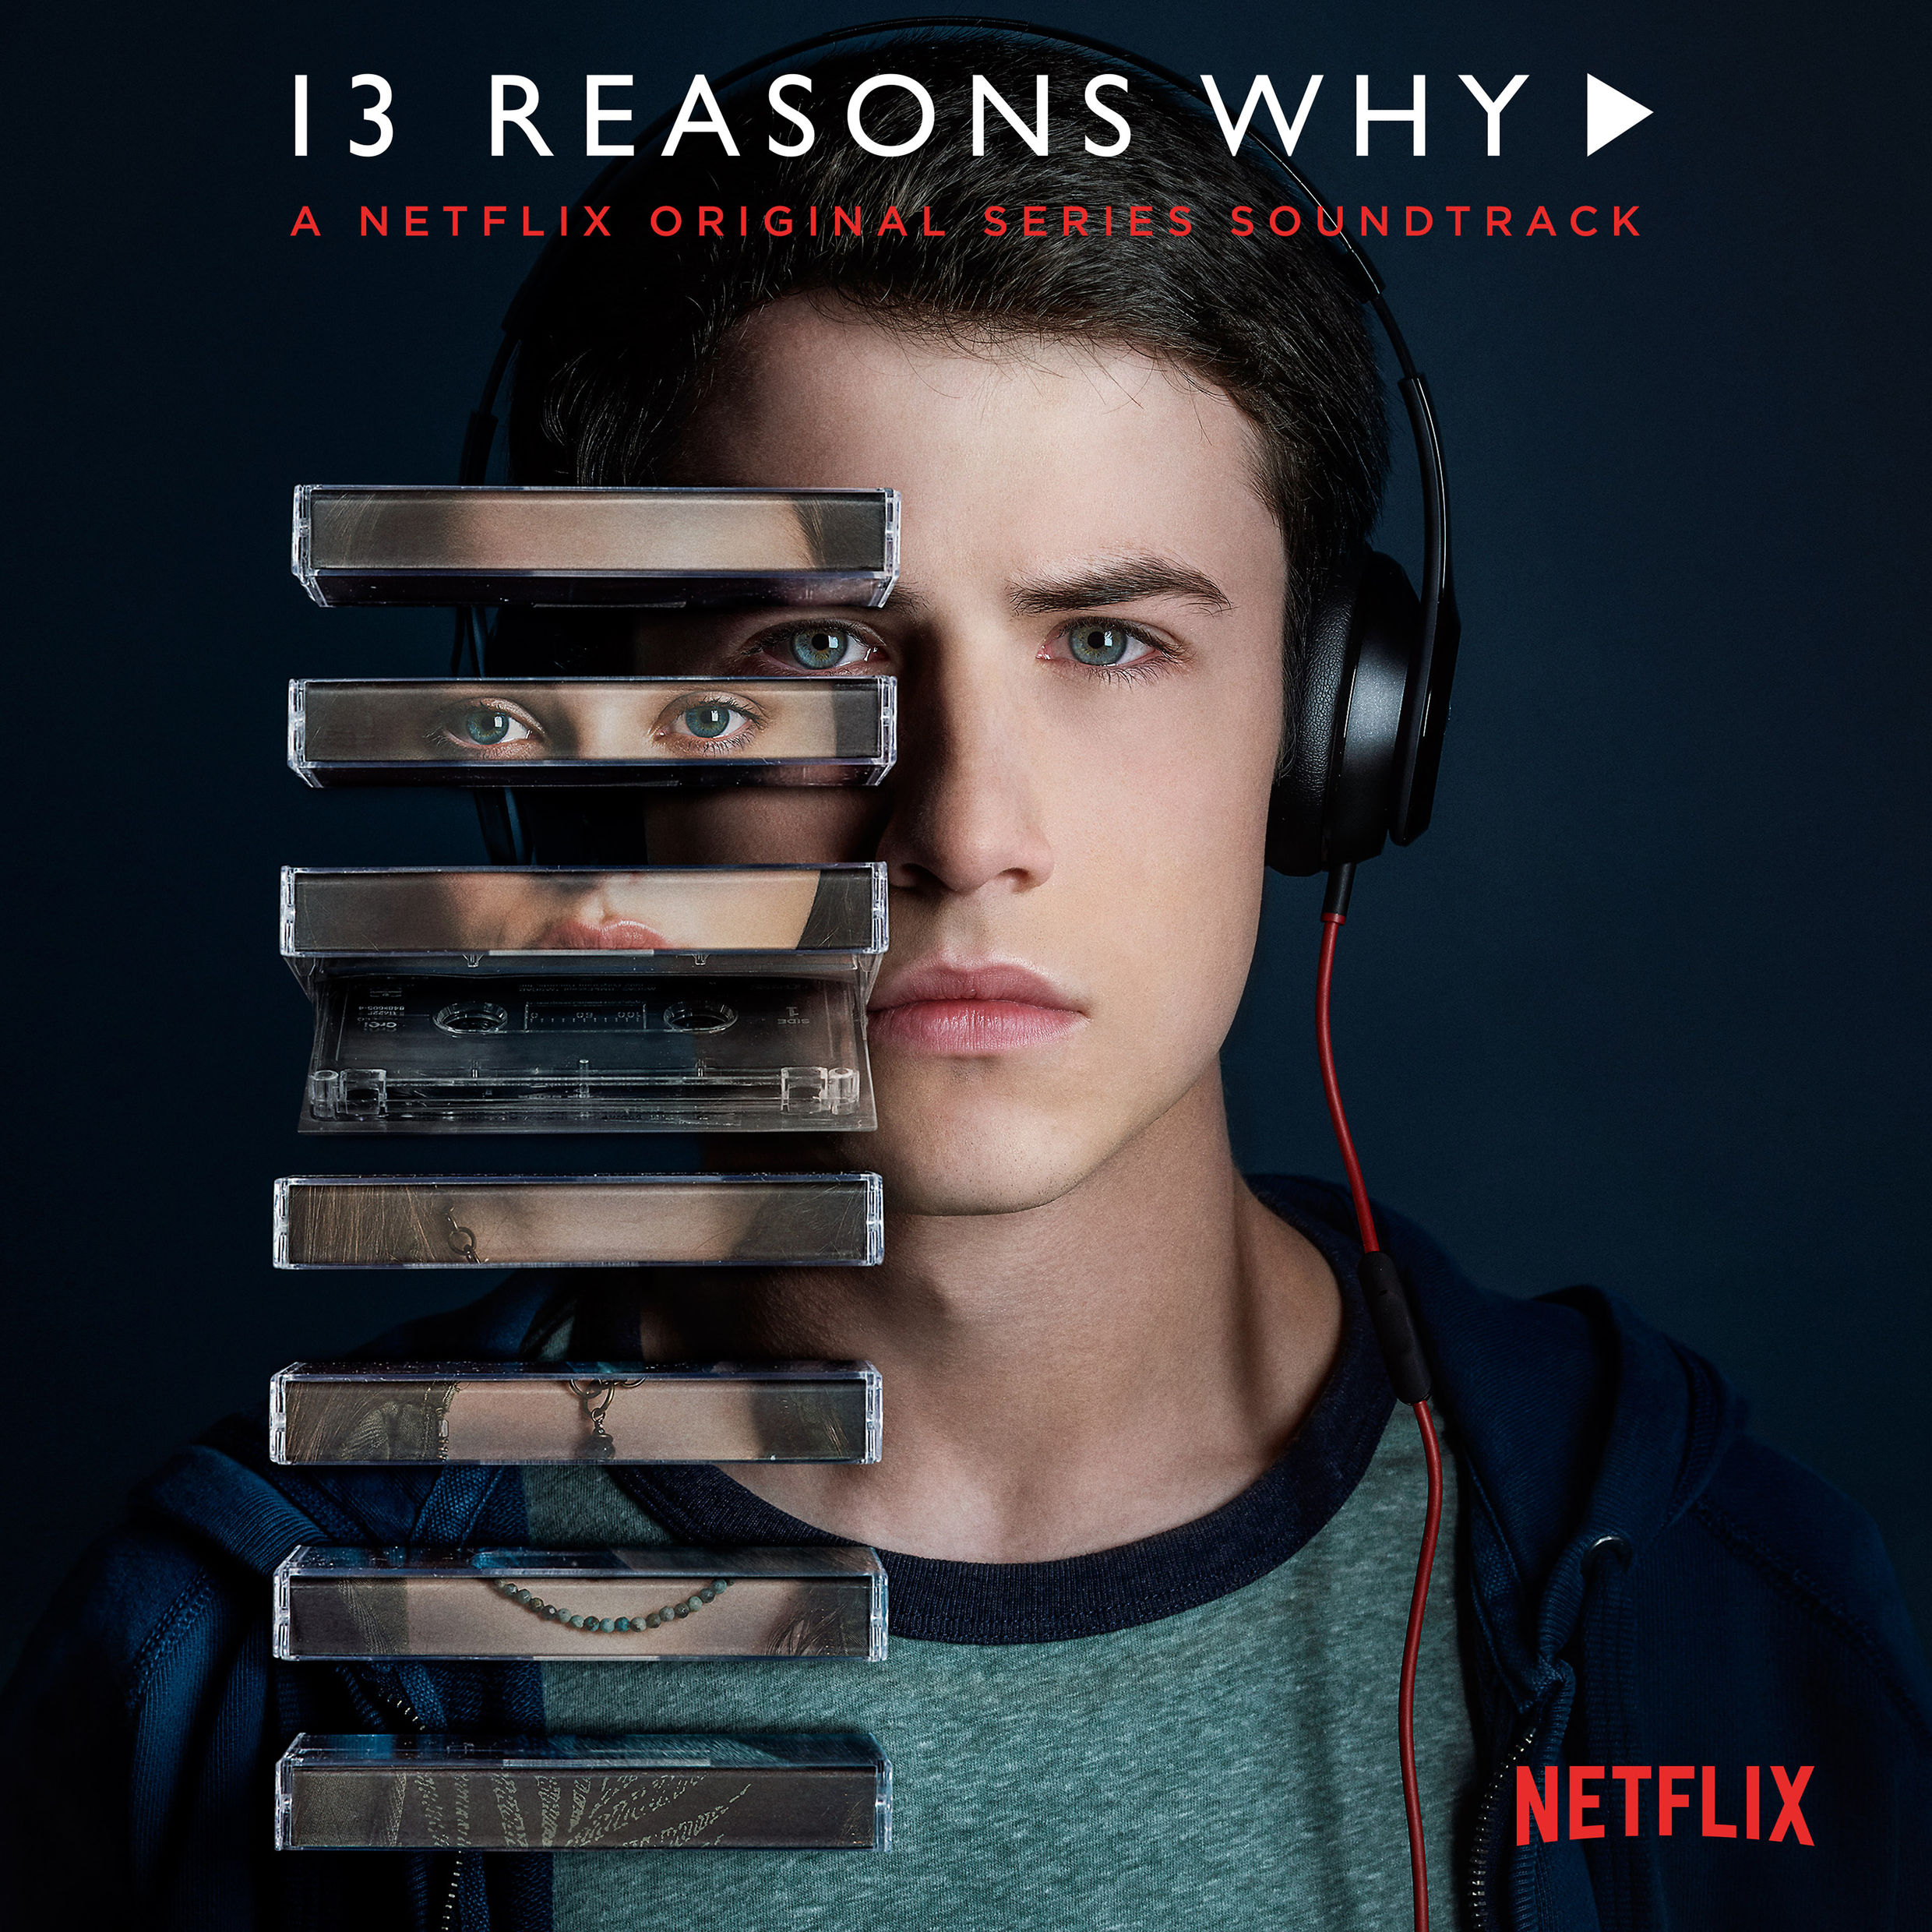 [10's] Selena Gomez - Only You (2017) OST%20-%2013%20Reasons%20Why